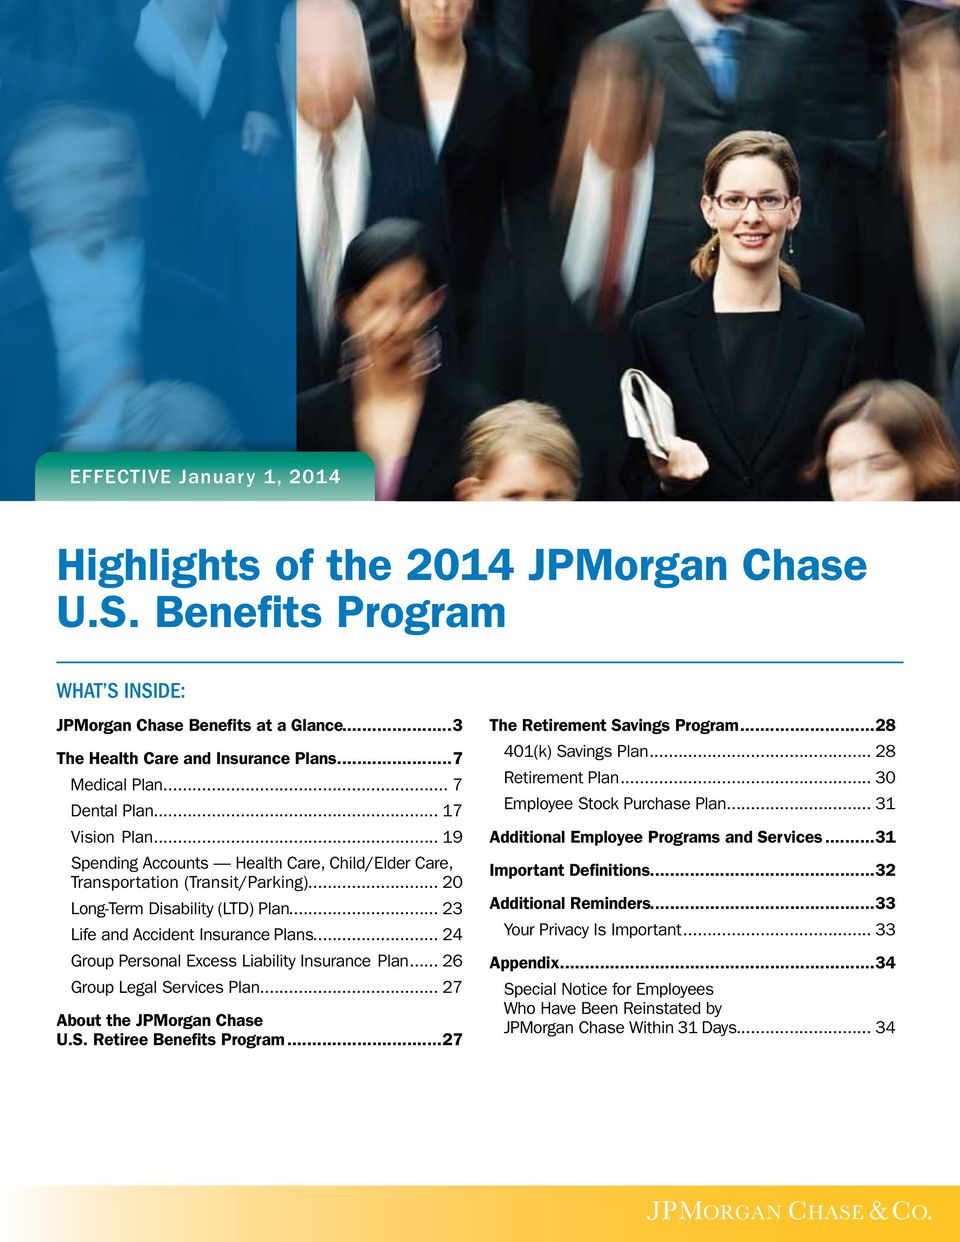 .. 24 Group Personal Excess Liability Insurance Plan... 26 Group Legal Services Plan... 27 About the JPMorgan Chase U.S. Retiree Benefits Program...27 The Retirement Savings Program.